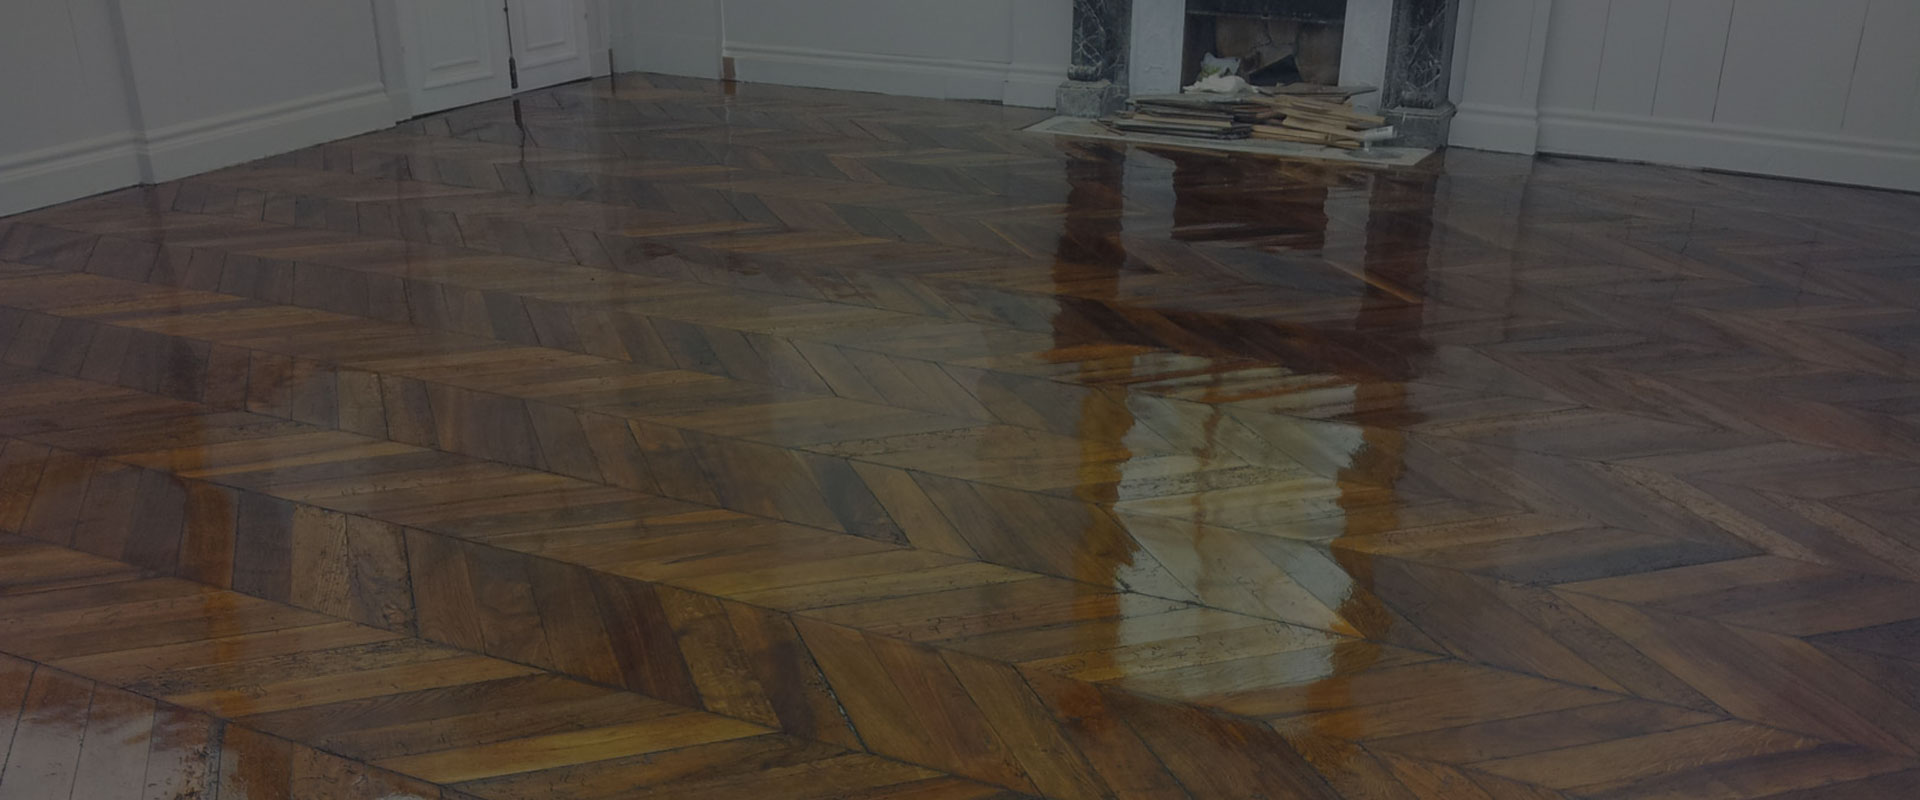 renovation parquet ancien rnovation de parquet ancien un savoirfaire remarquable with. Black Bedroom Furniture Sets. Home Design Ideas